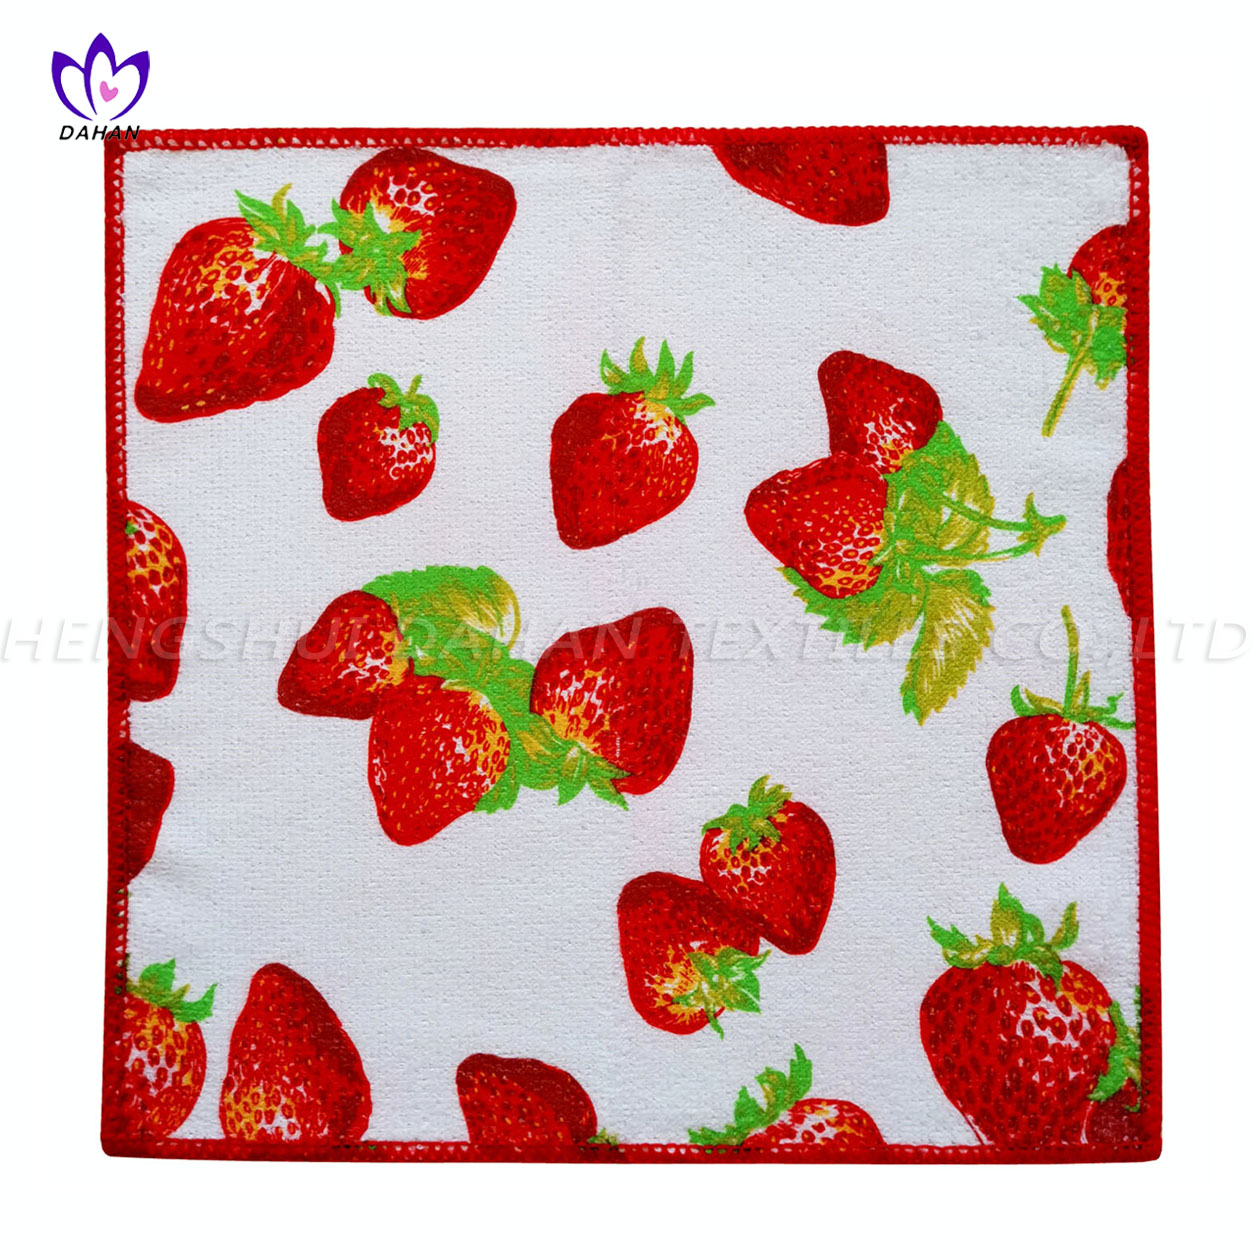 MC126. 100% polyester printing microfiber kitchen towel.